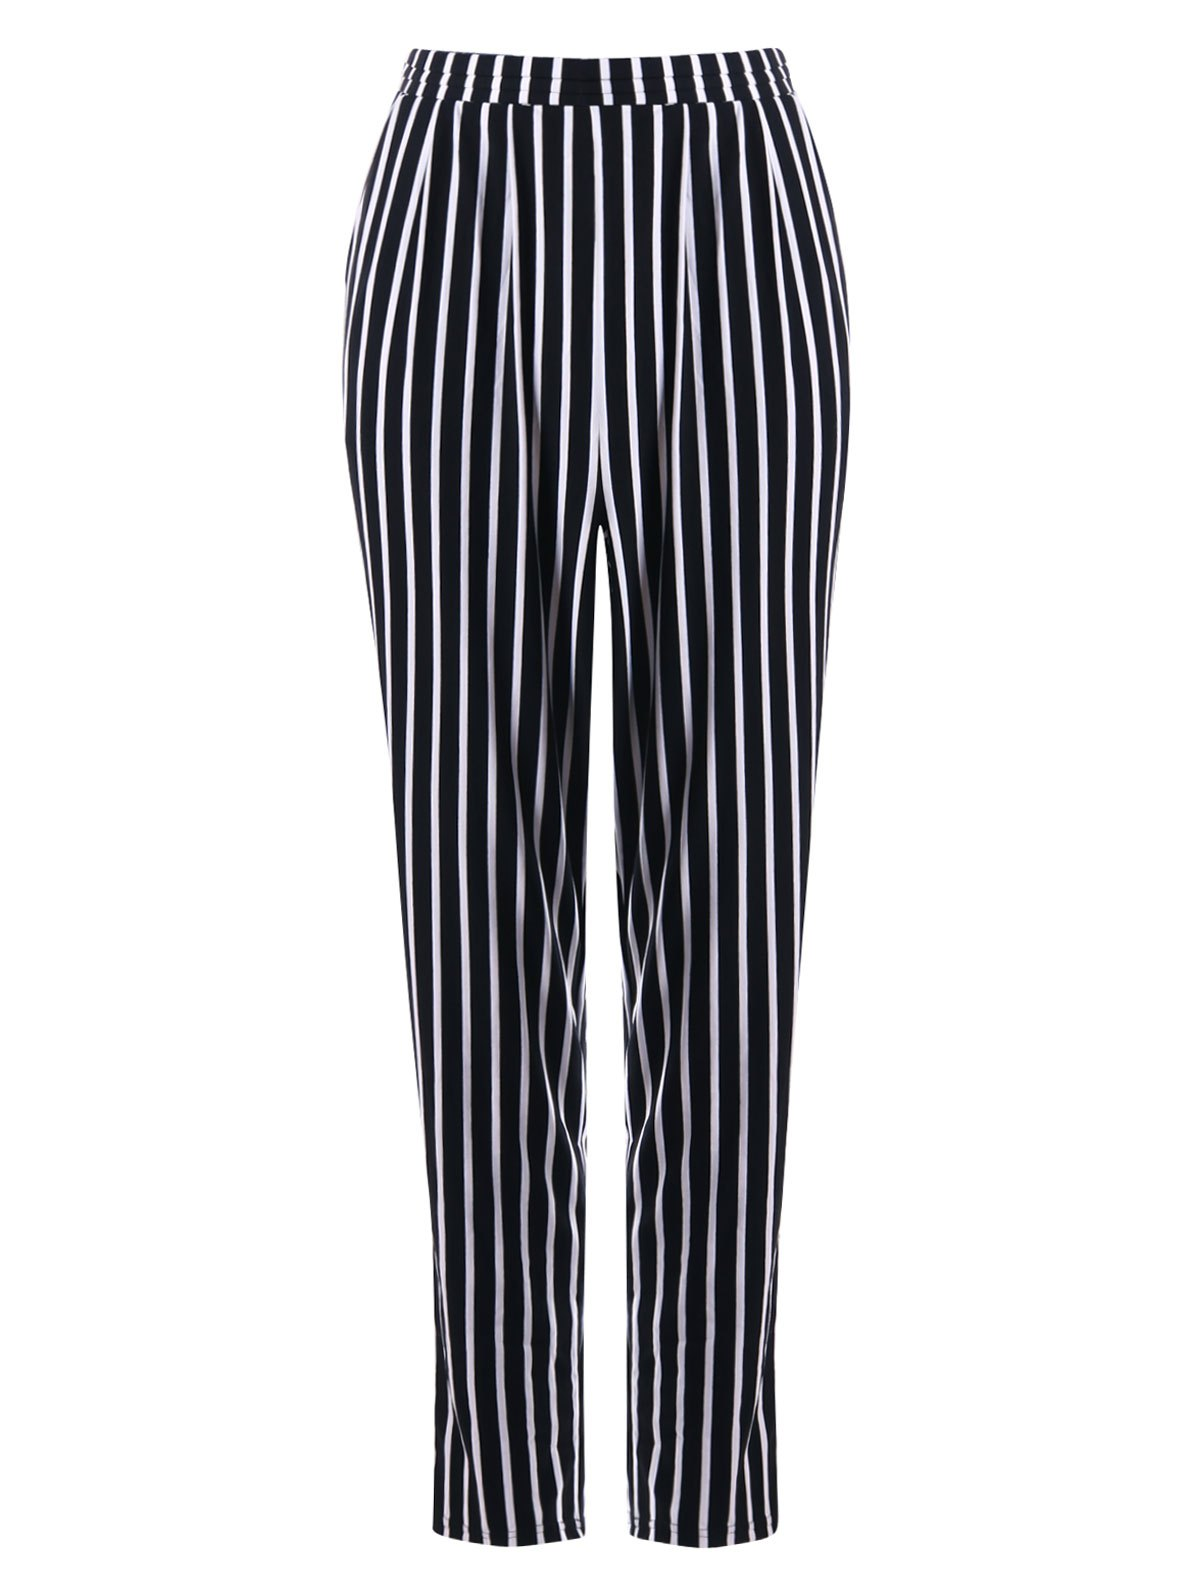 Casual Striped Tapered Pants - BLACK STRIPE M